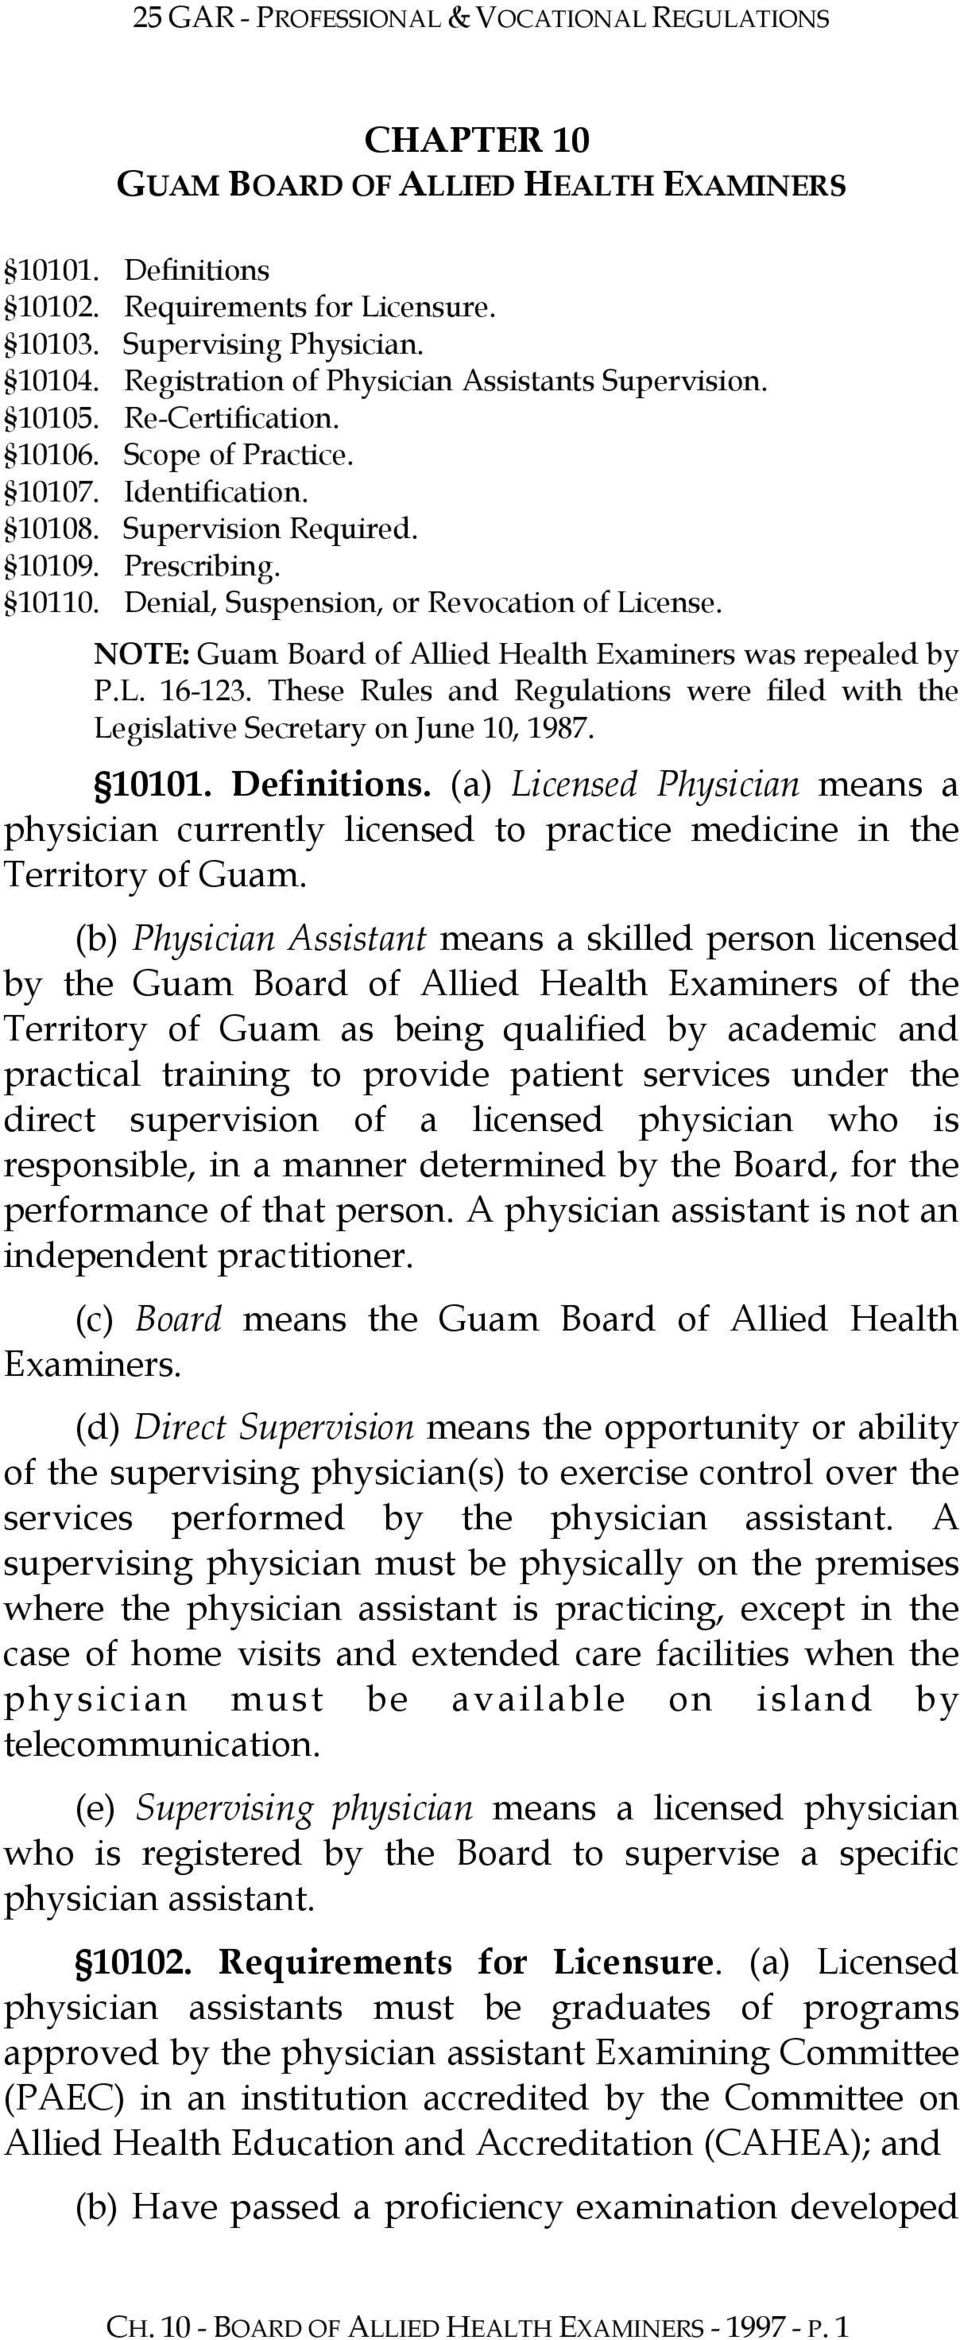 NOTE: Guam Board of Allied Health Examiners was repealed by P.L. 16-123. These Rules and Regulations were filed with the Legislative Secretary on June 10, 1987. 10101. Definitions.